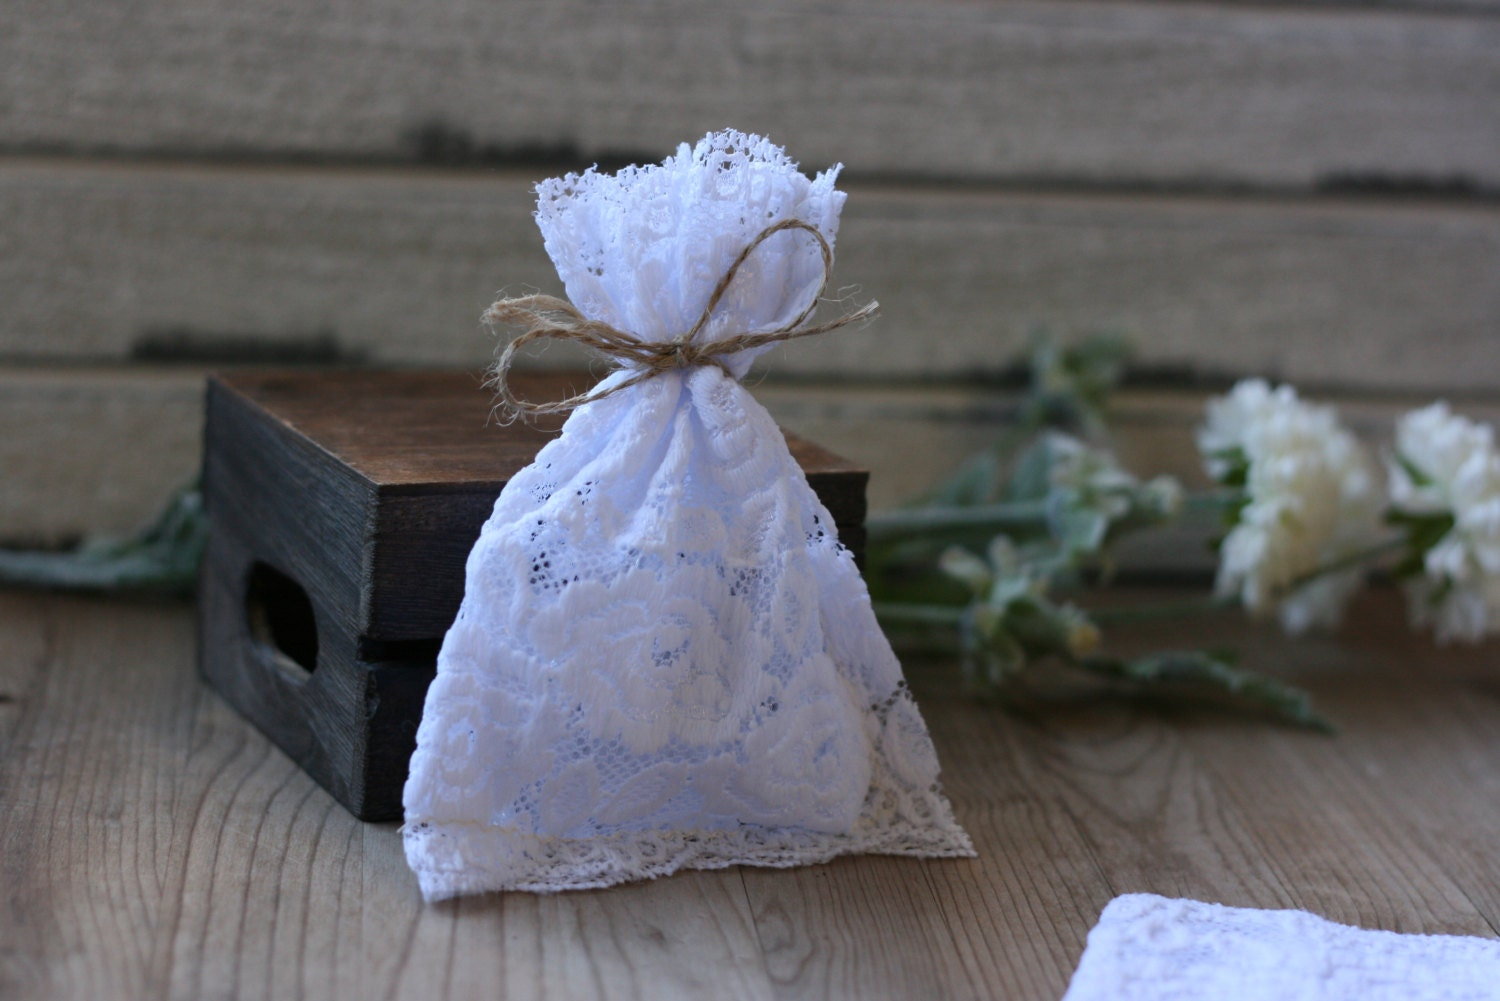 Wedding Favor Bags Lace : to LaCe Wedding favor bags, 50 WHITE RoSe lace, rustic wedding favor ...